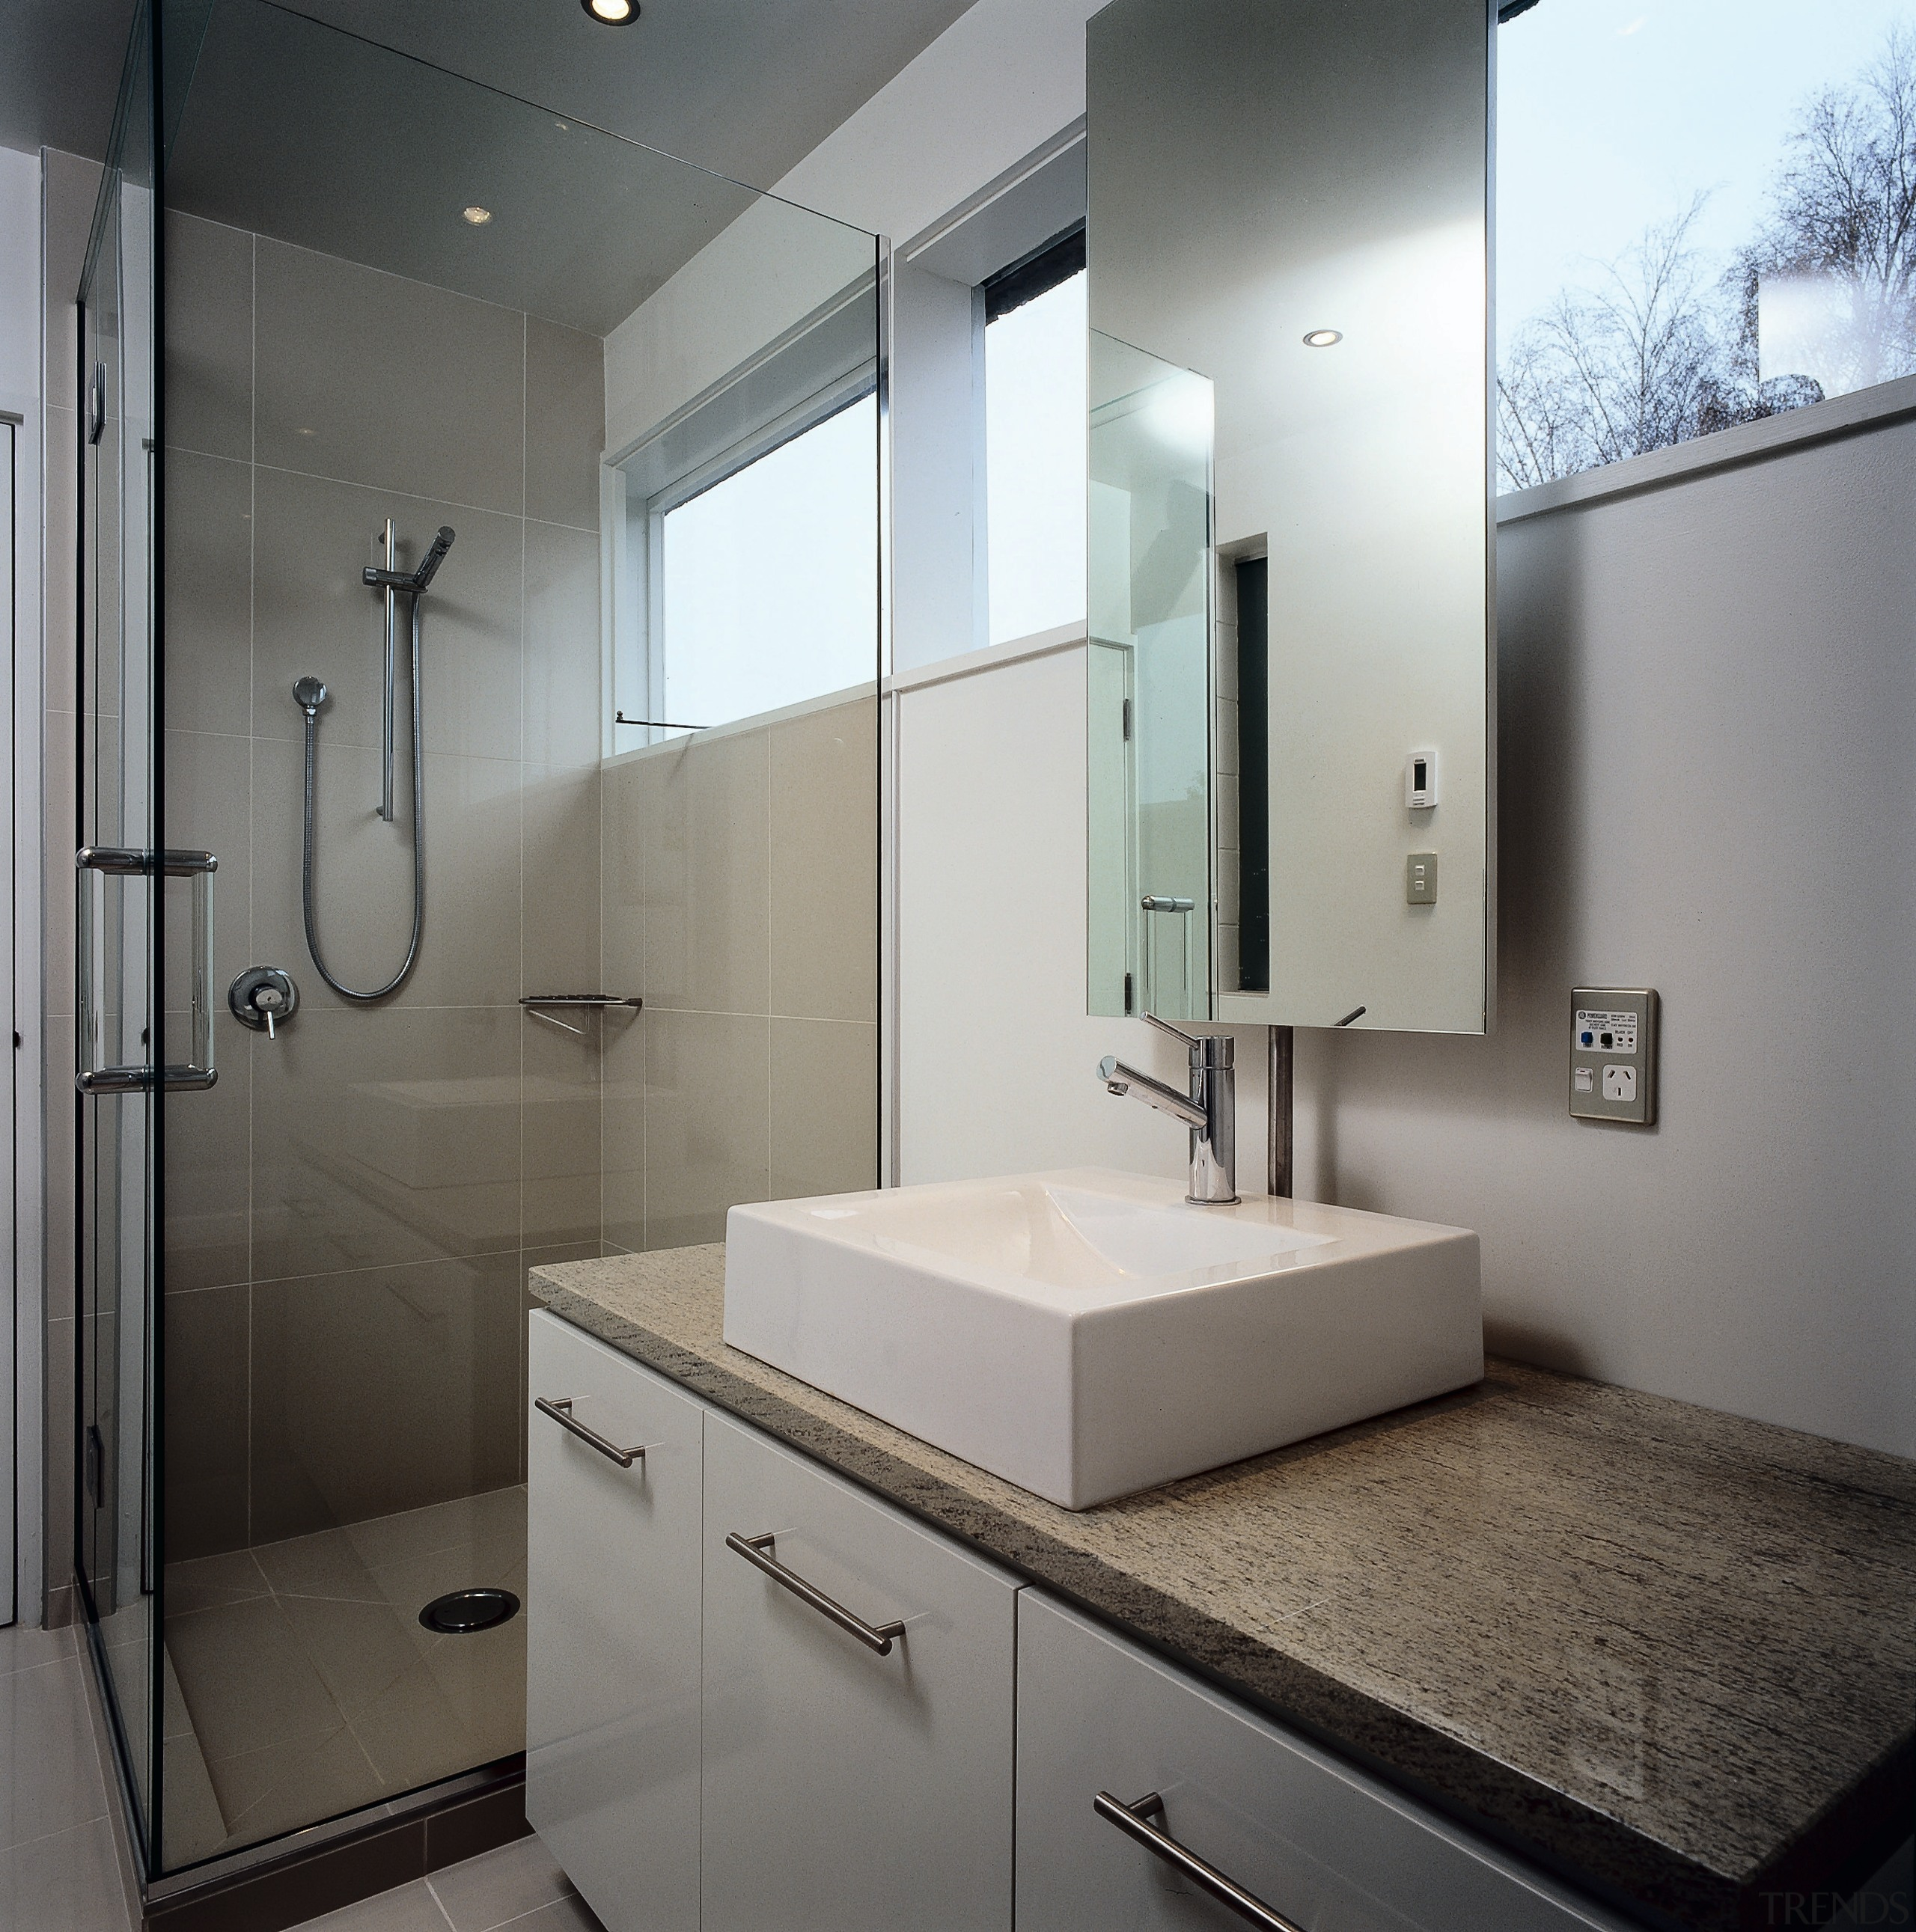 The main bathroom of a home, showing the architecture, bathroom, bathroom accessory, bathroom cabinet, home, interior design, product design, room, sink, gray